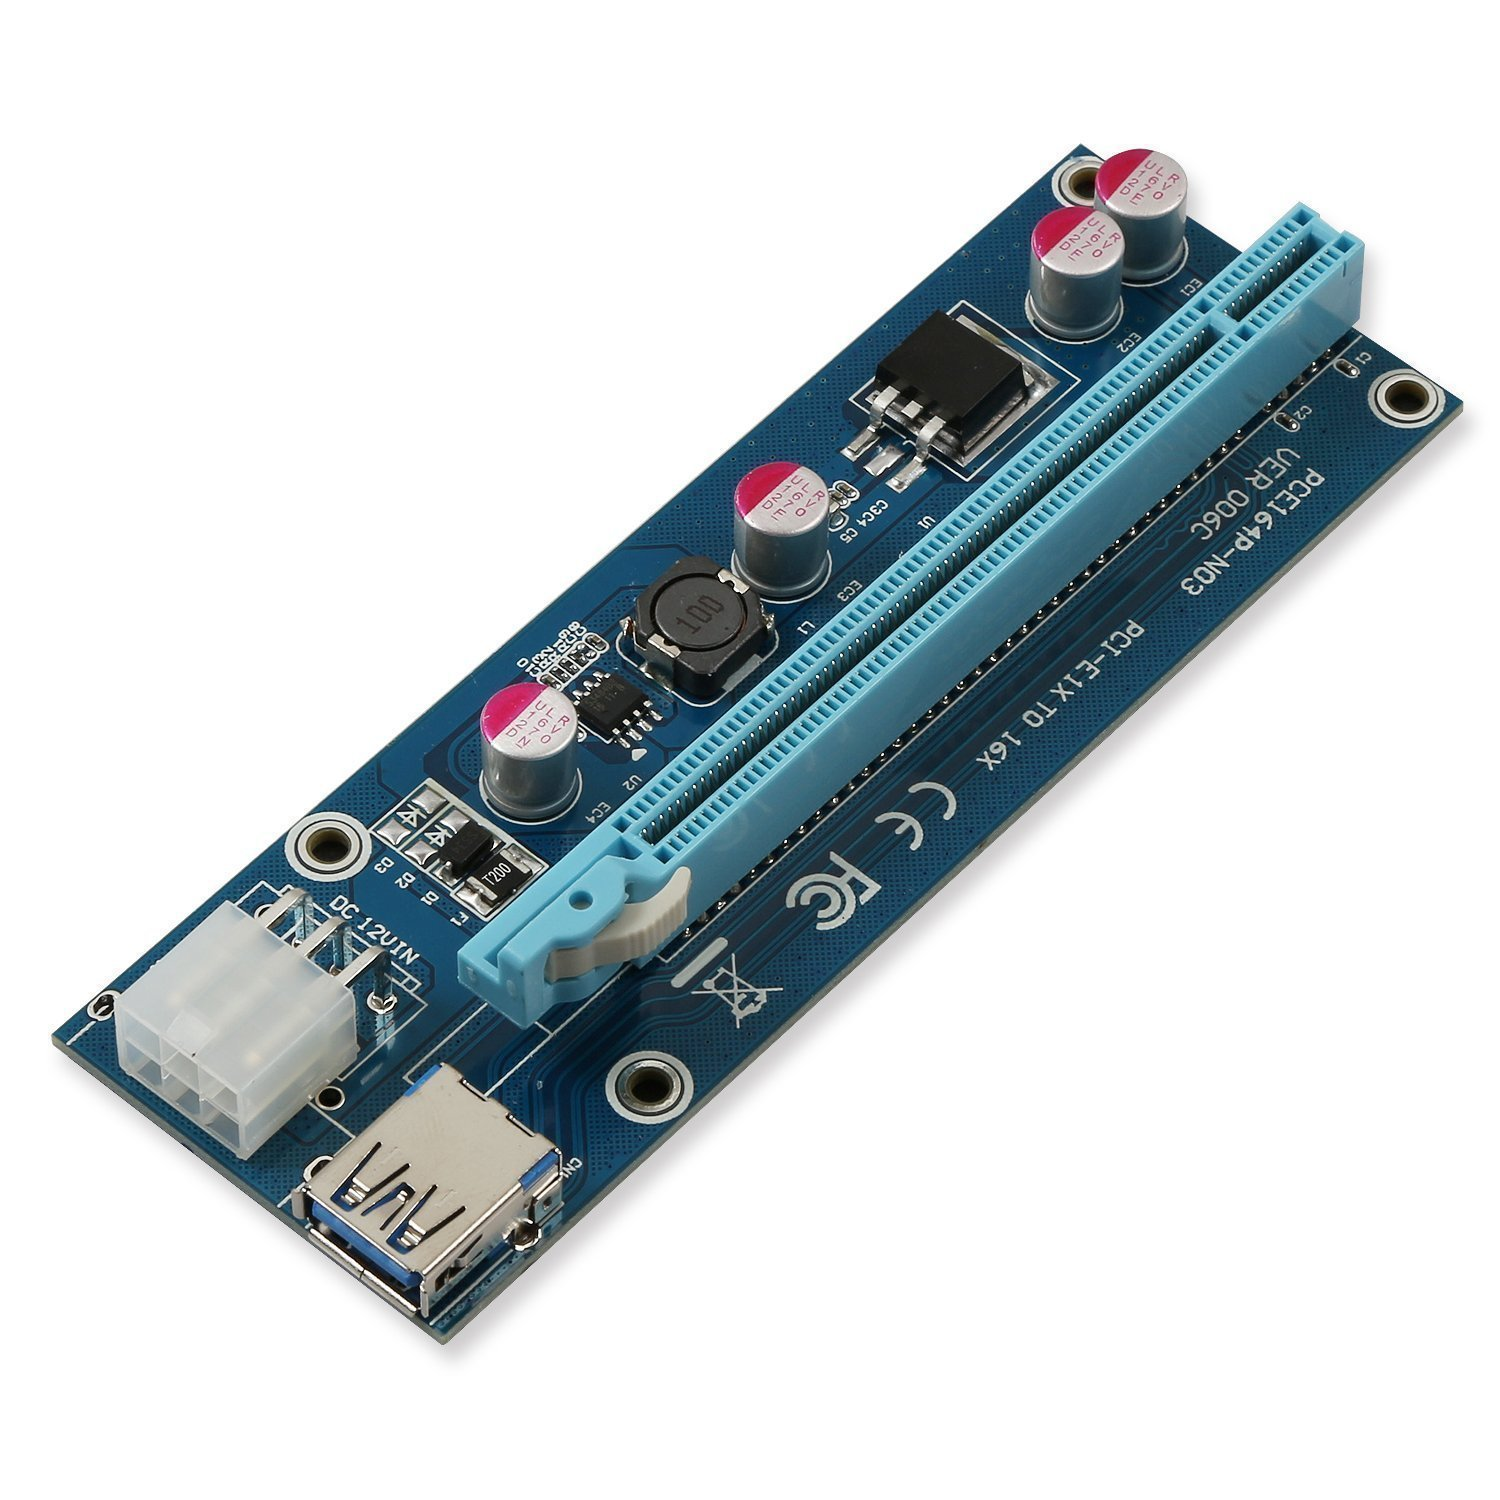 6 Pack GPU Graphic Card Crypto Currency Mining 6-Pin Powered PCI-E PCI Express Riser 1X to 16X PCIE USB 3.0 Adapter Card VER 006C with USB Extension Cable LONGXI